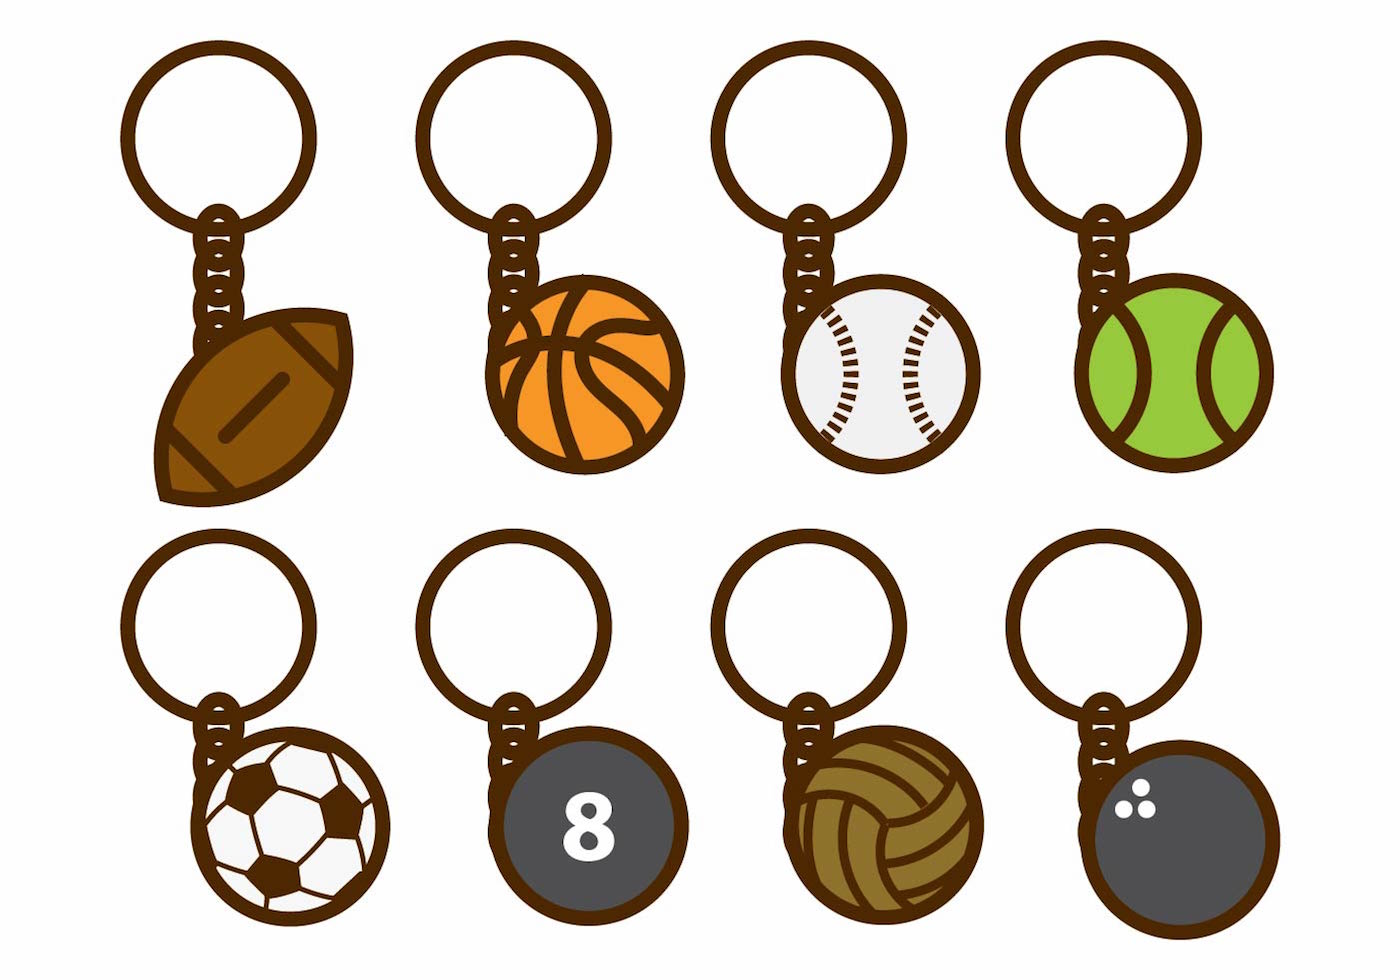 Monogram Free Circle Keychain Svg – 172+ SVG PNG EPS DXF in Zip File